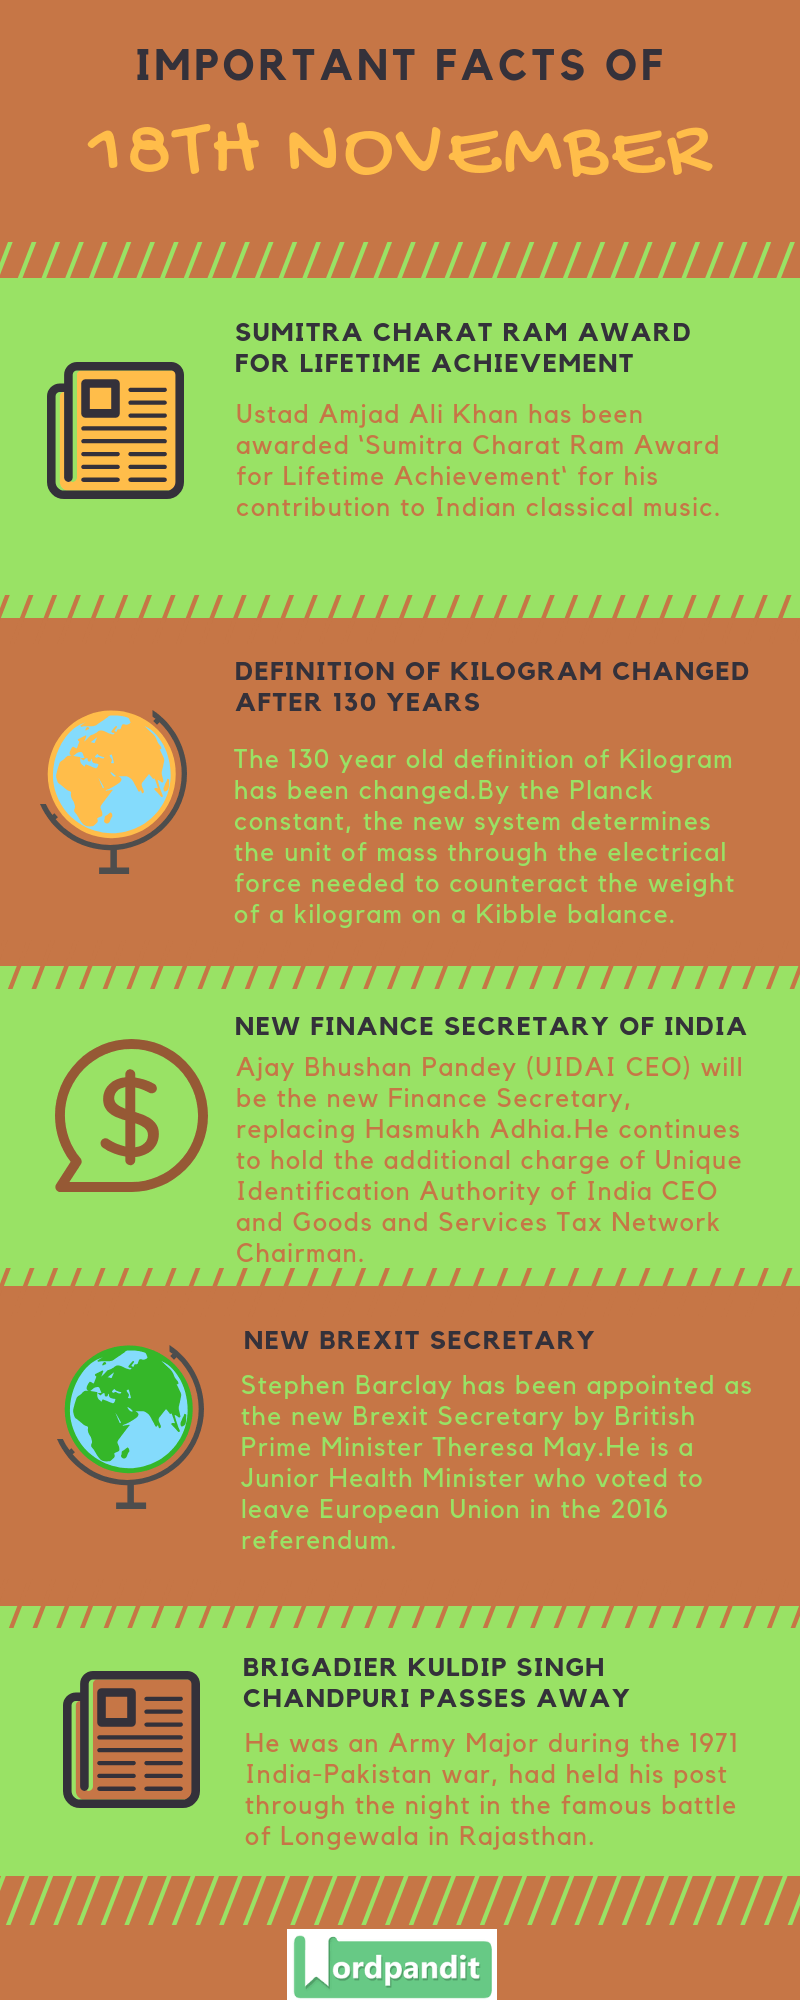 Daily Current Affairs 18 November 2018 Current Affairs Quiz 18 November 2018 Current Affairs Infographic